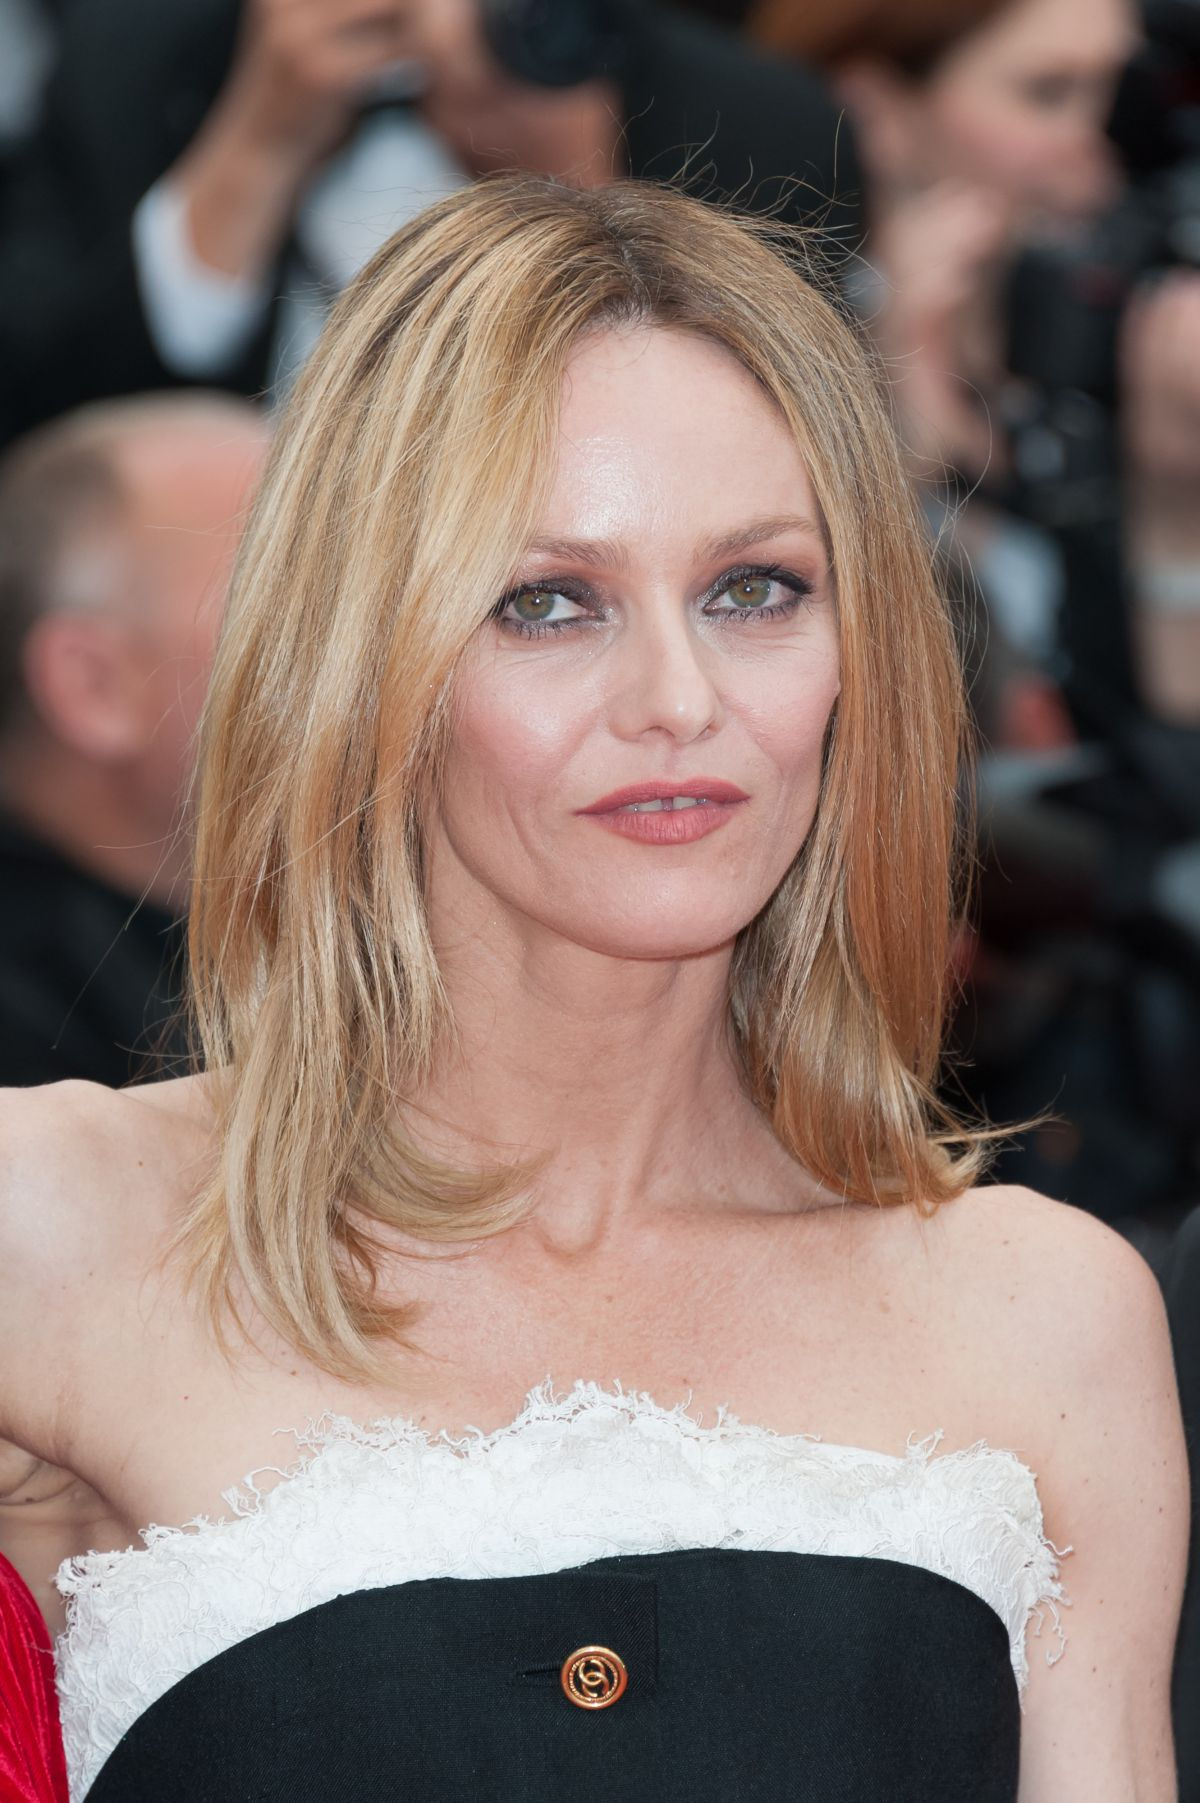 VANESSA PARADIS at 69th Annual Cannes Film Festival ... Vanessa Paradis